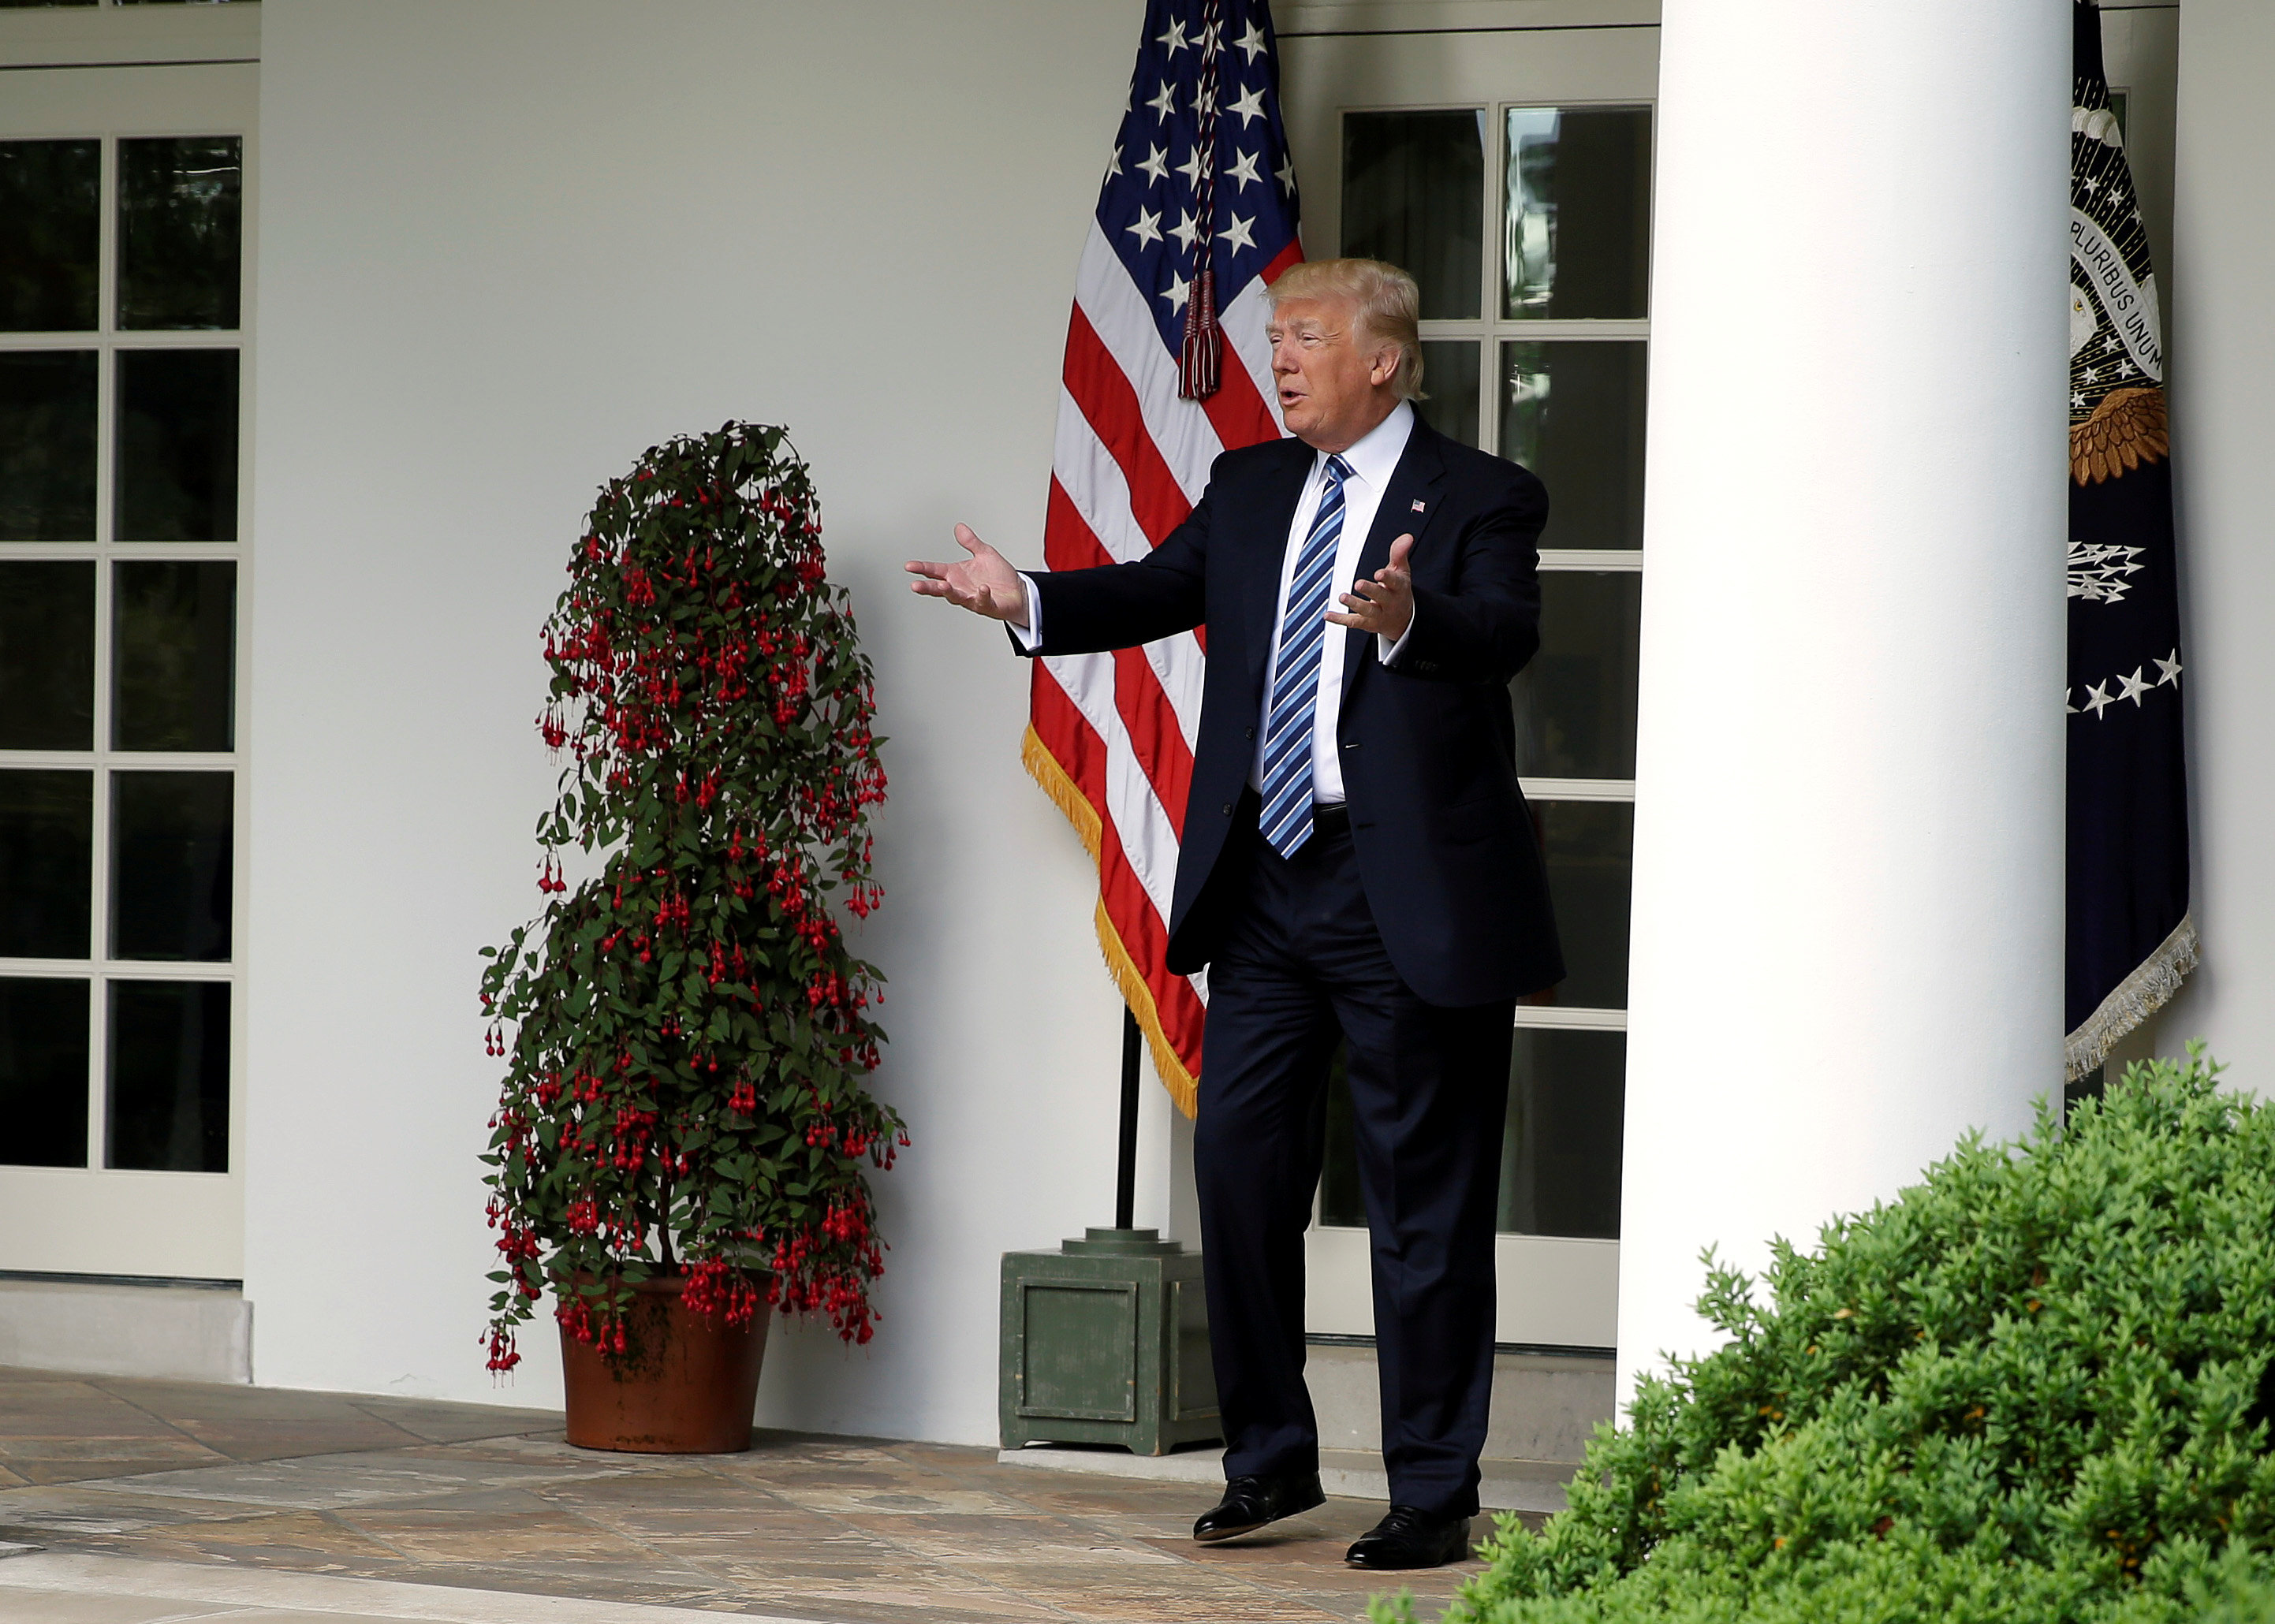 U.S. President Donald Trump speaks to staffers setting up for the Commander in Chief's trophy presentation in the Rose Garden of the White House in Washington, U.S., May 2, 2017. REUTERS/Joshua Roberts